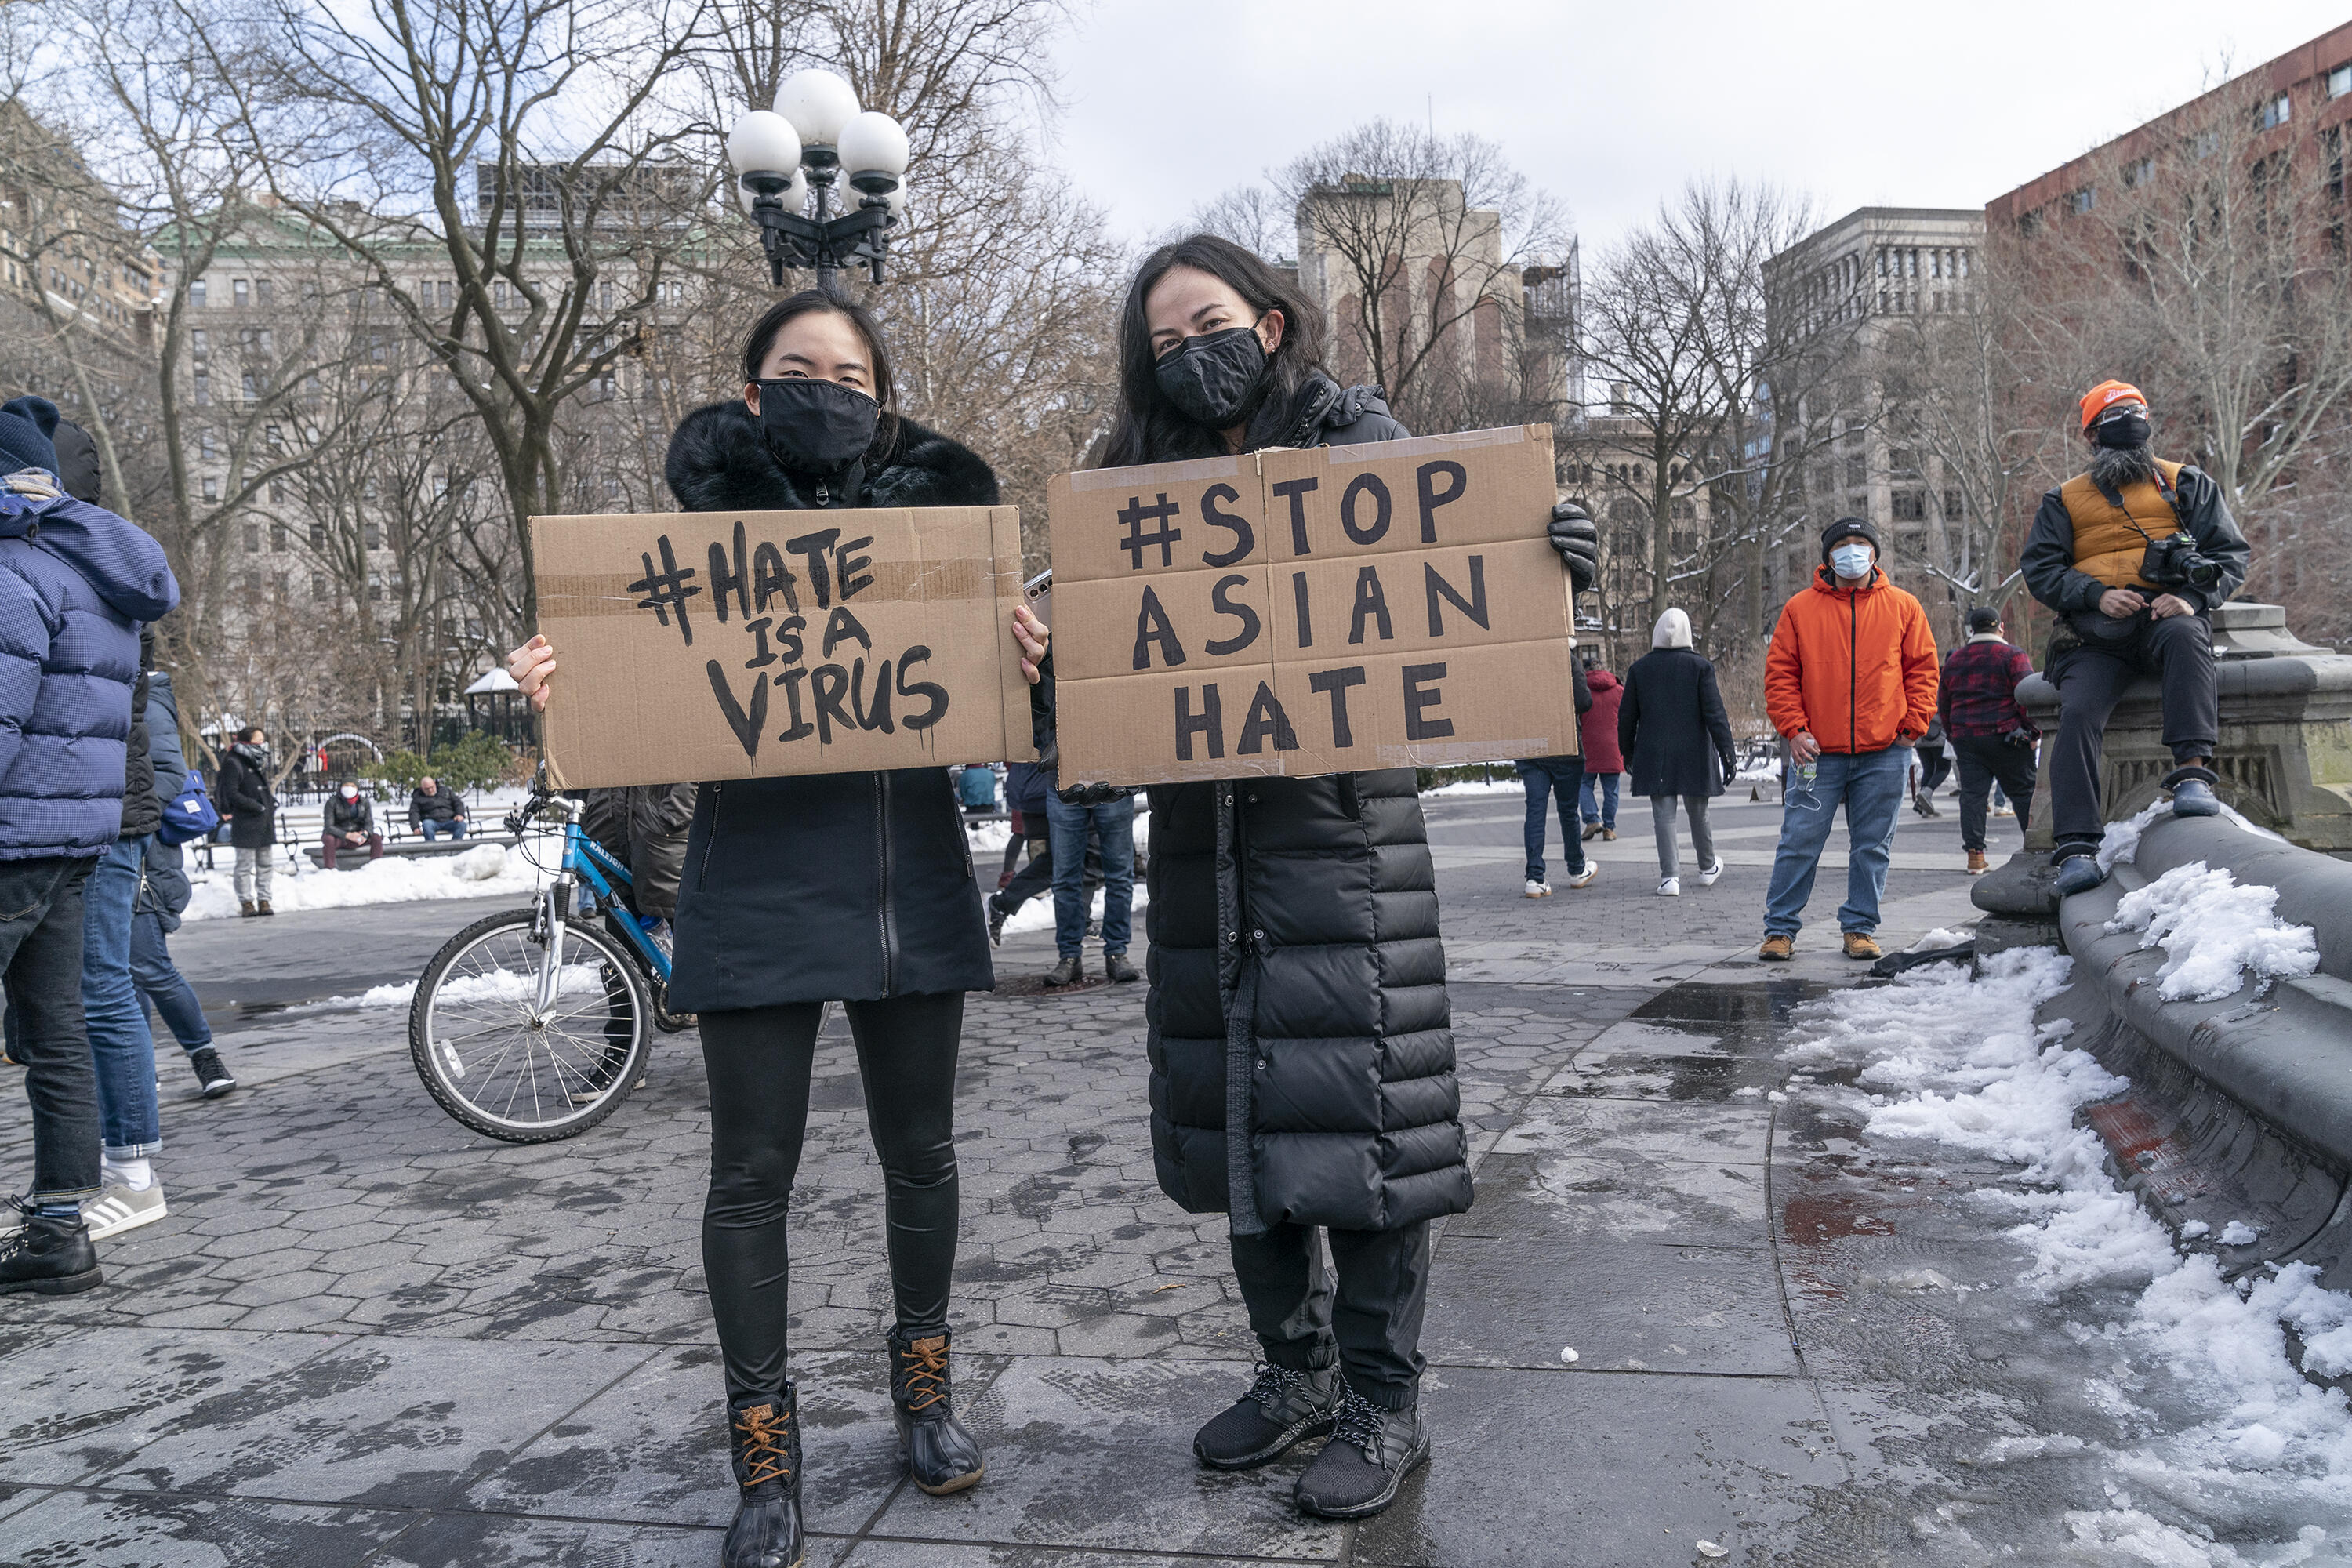 """Two women holding signs saying """"#Hate is a virus"""" and """"#Stop Asian hate"""""""